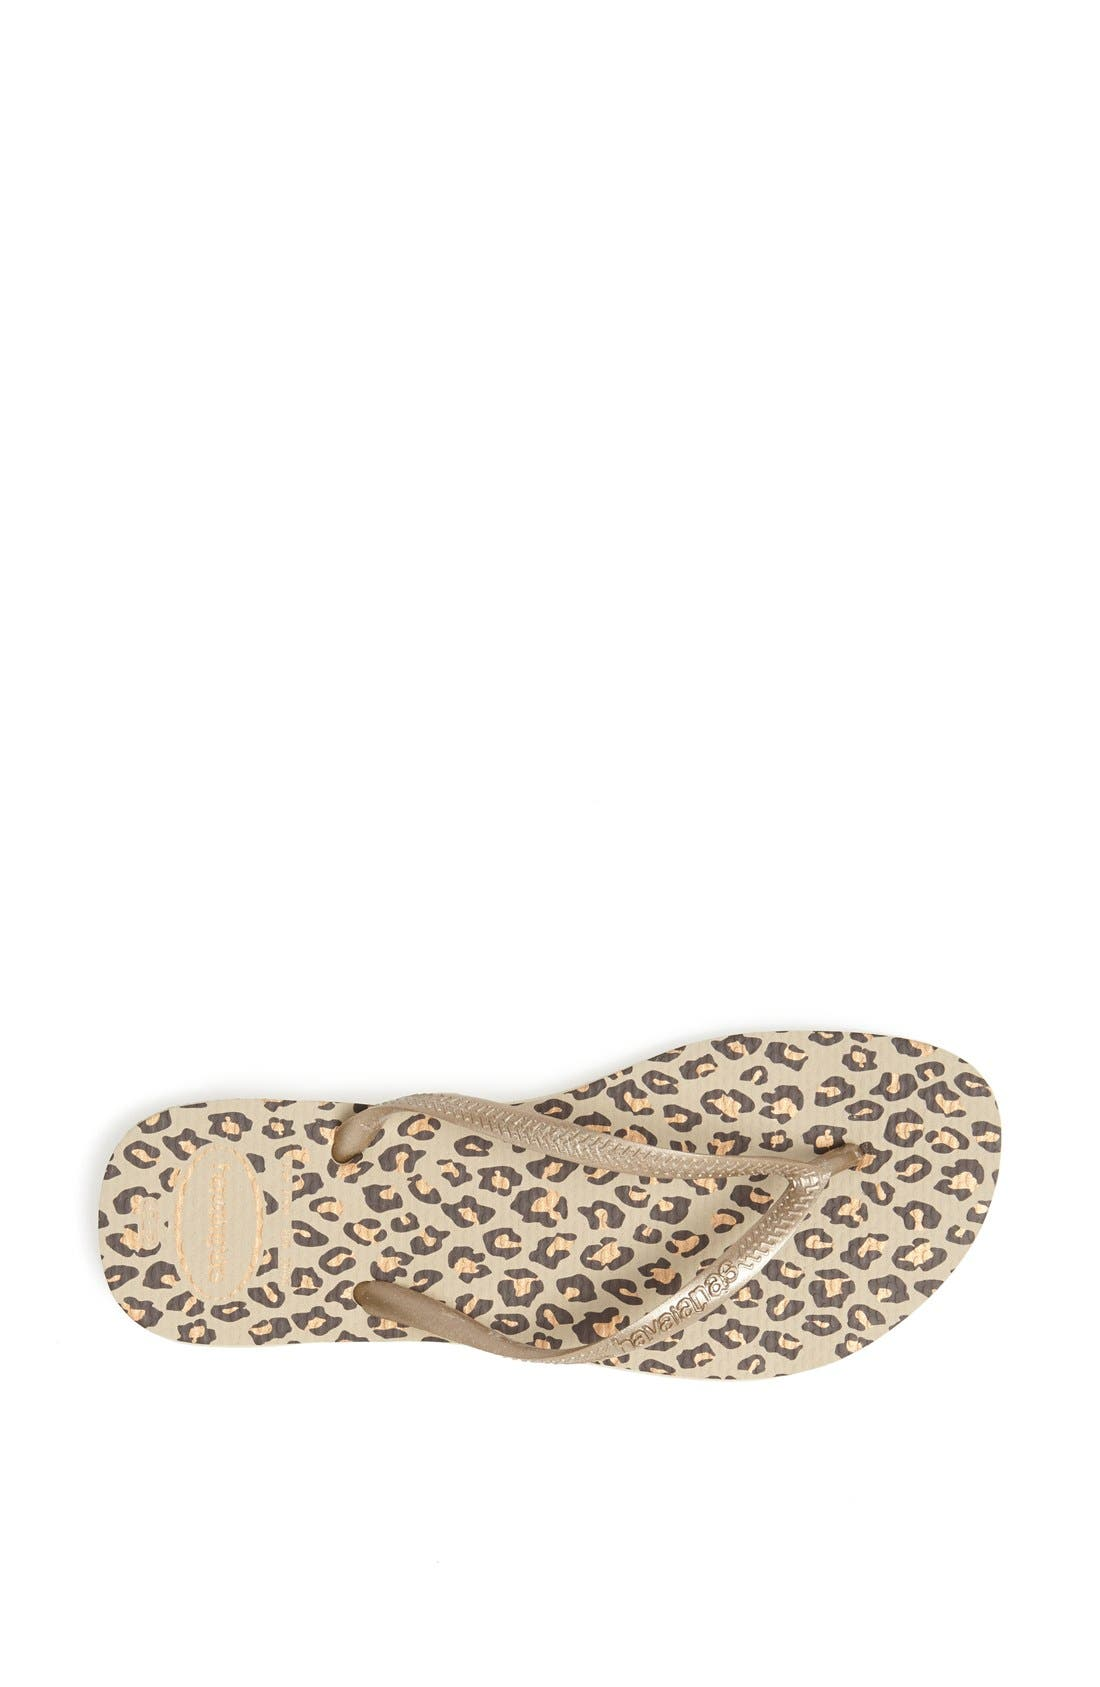 Alternate Image 3  - Havaianas 'Slim Animal Print' Flip Flop (Women)